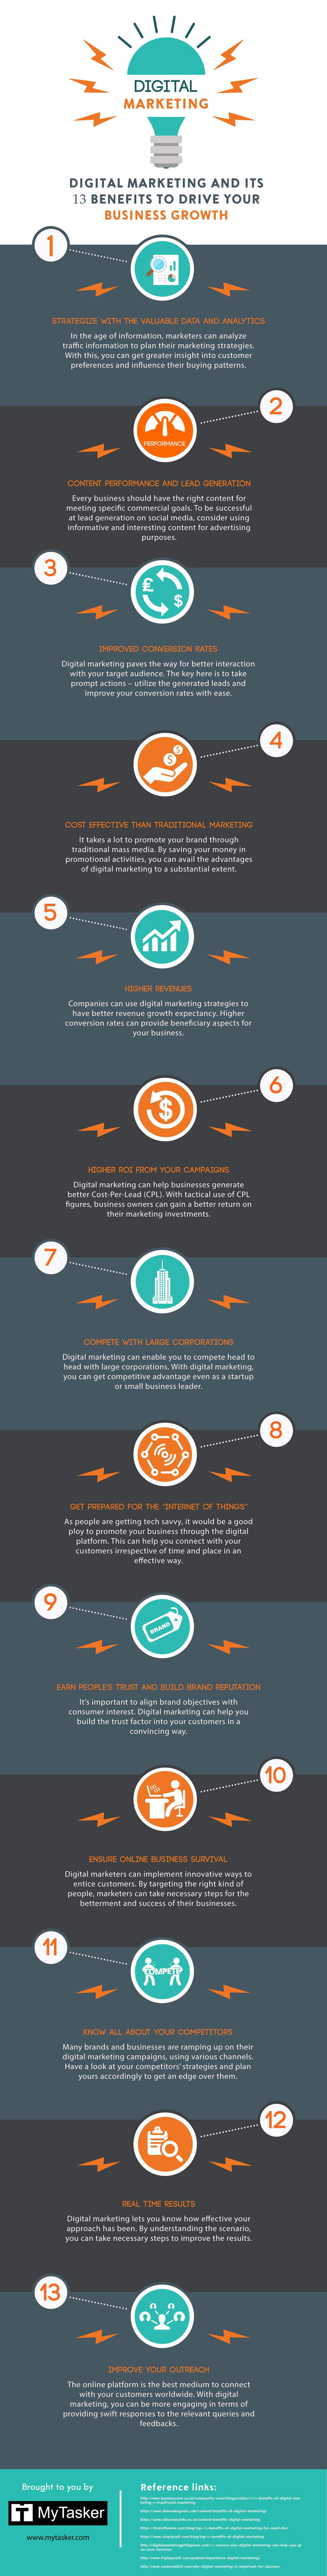 MyTasker Blog | Digital Marketing and Its 13 Benefits to Drive Your Business Growth [Infographic]